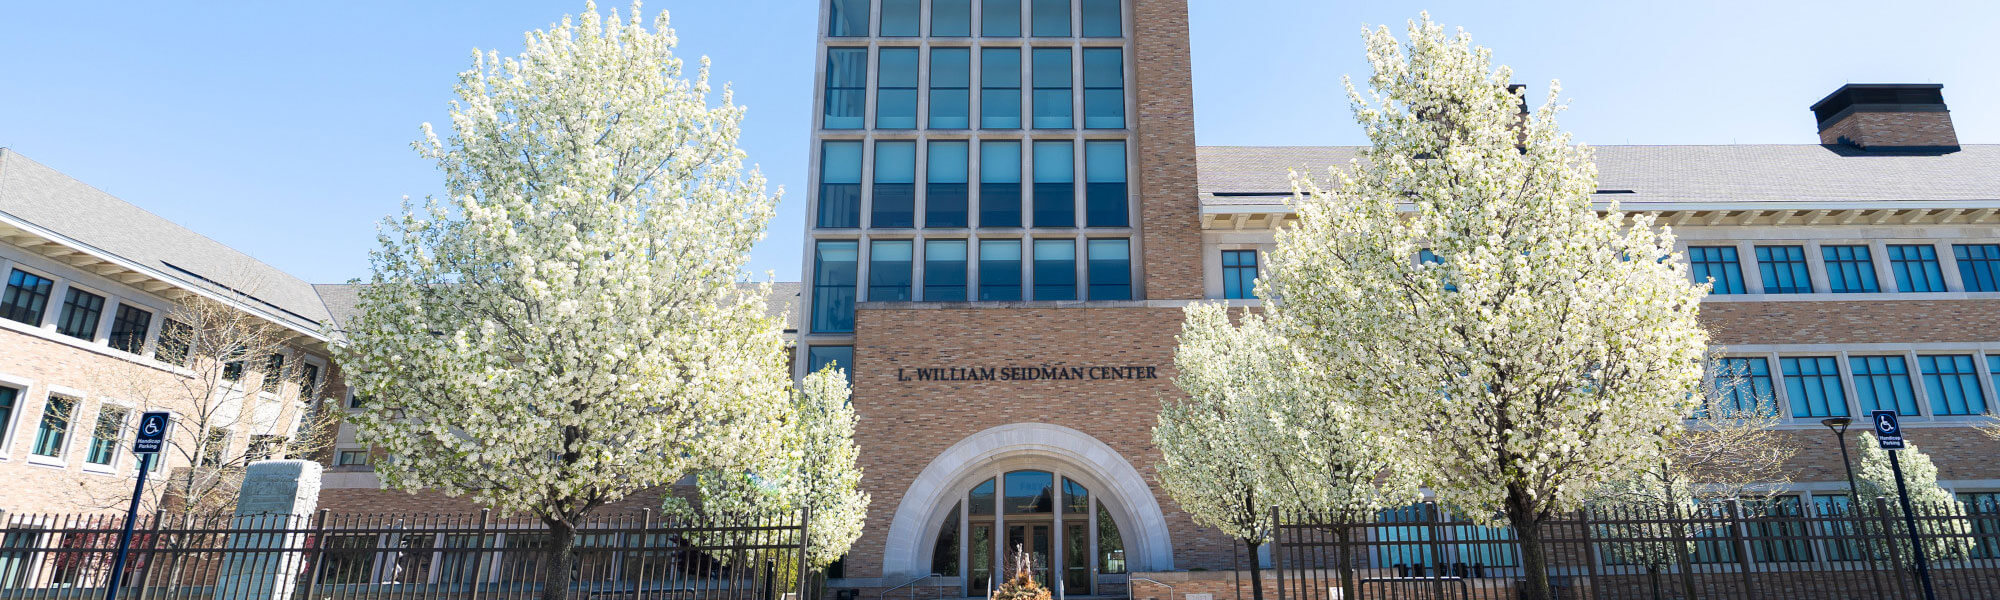 The L. William Seidman Center at Grand Valley State University.